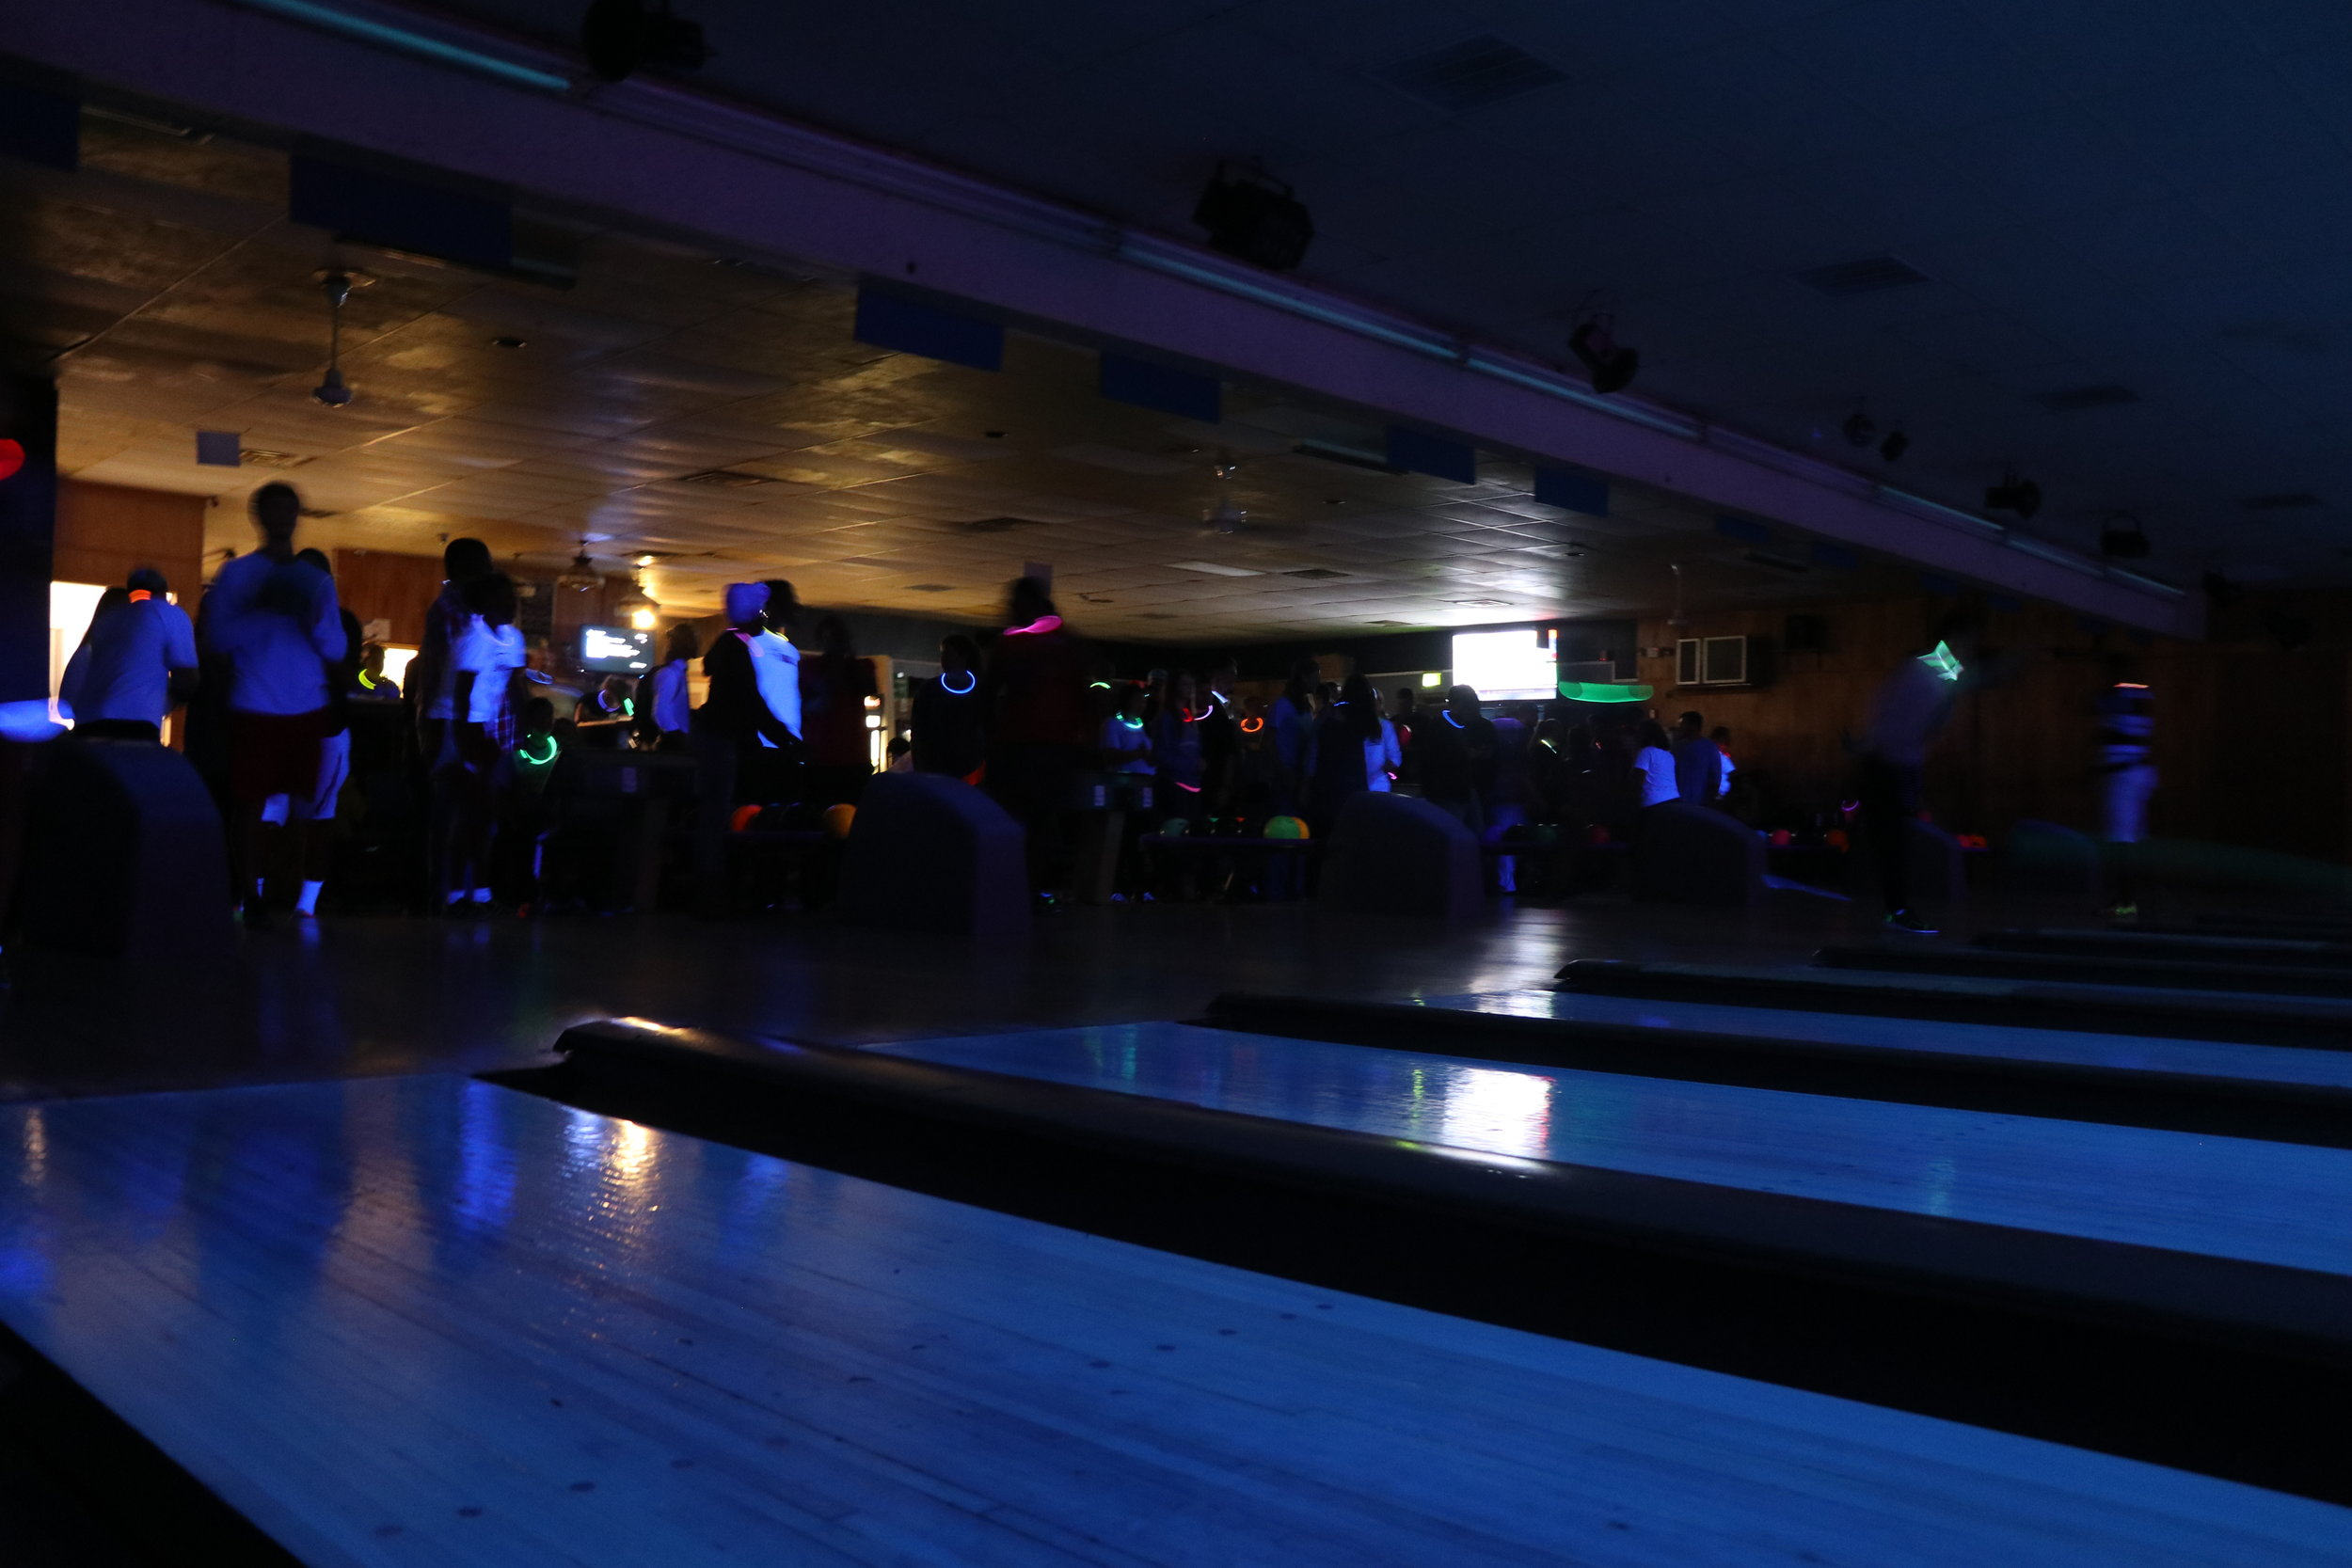 The bowling alley was crowded with NGU students and glow sticks.